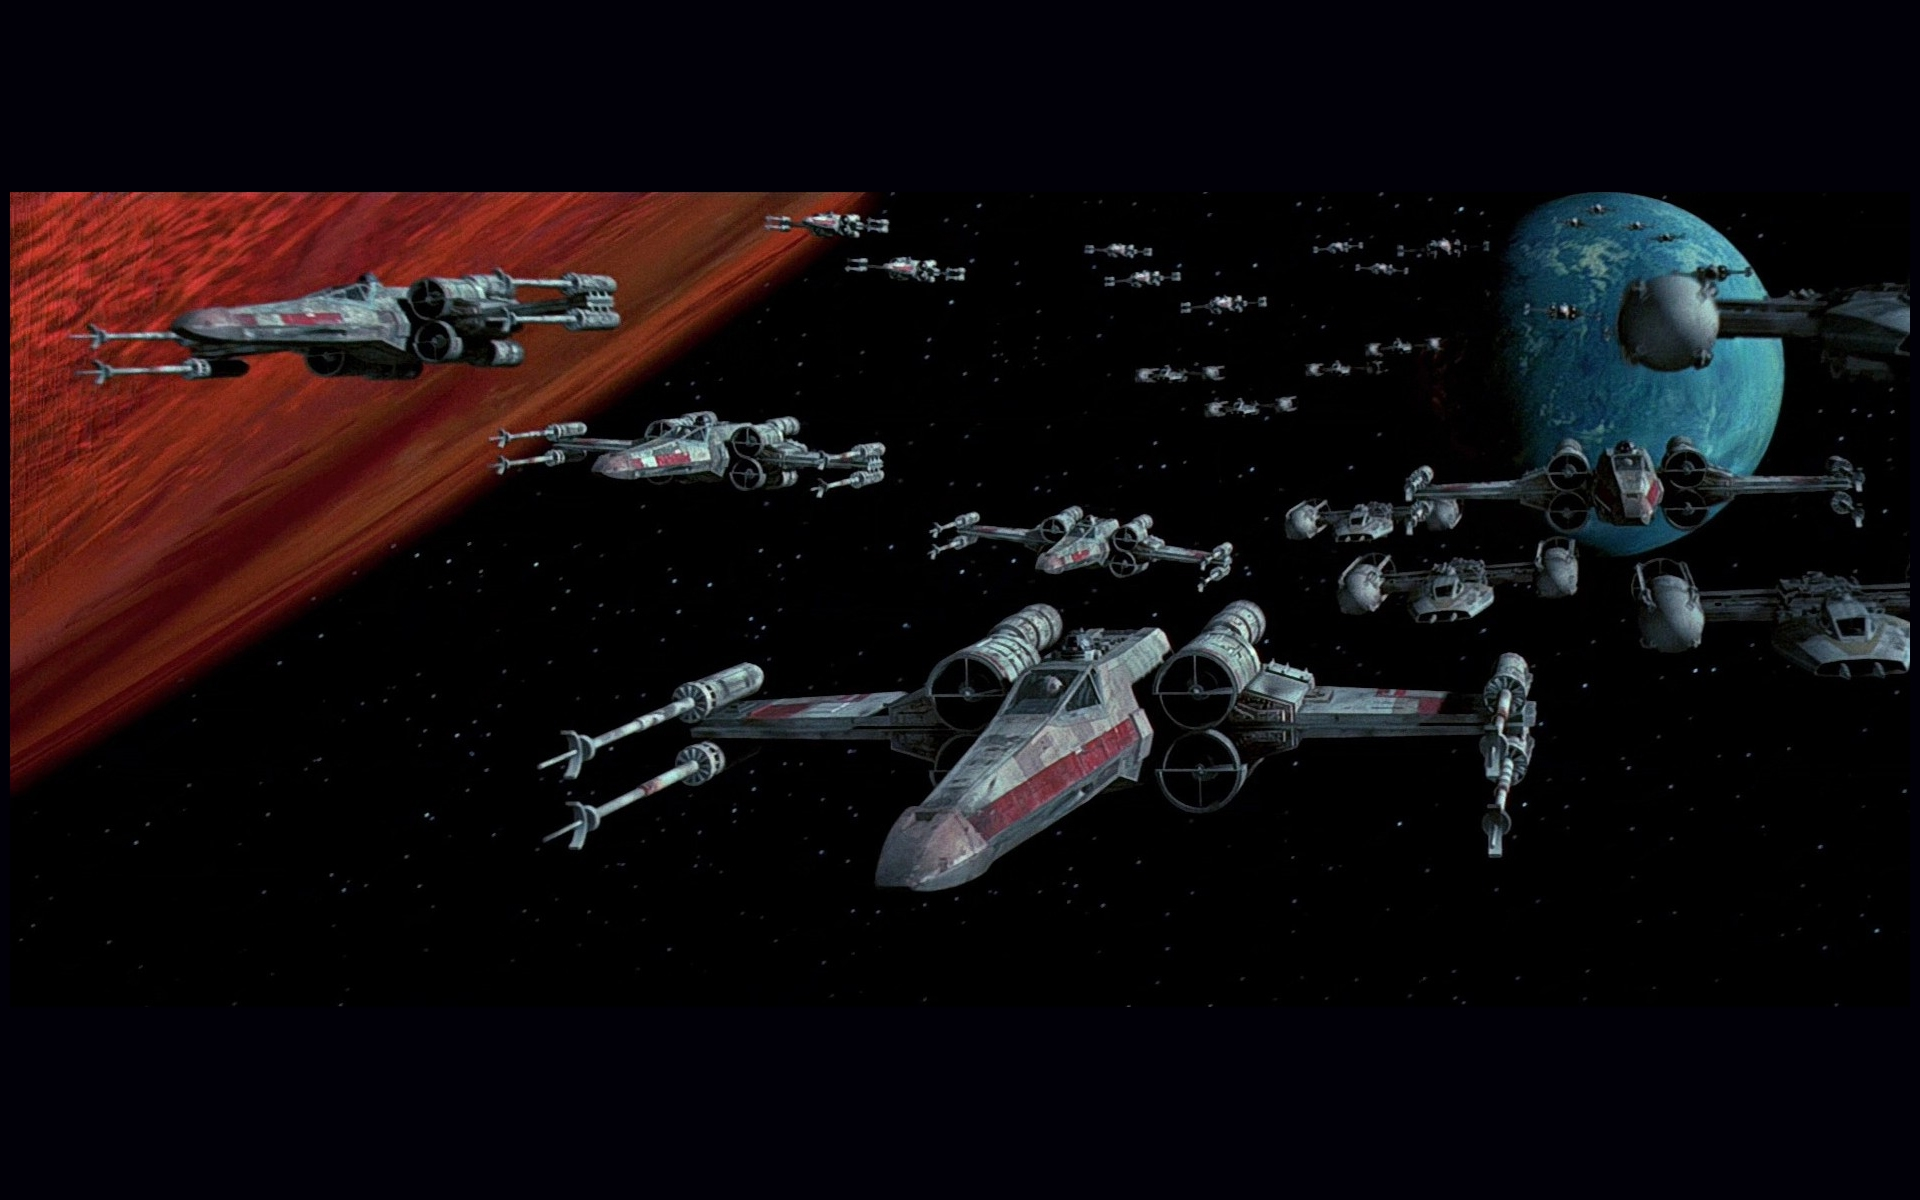 Star Wars X Wing 6808 Hd Wallpaper